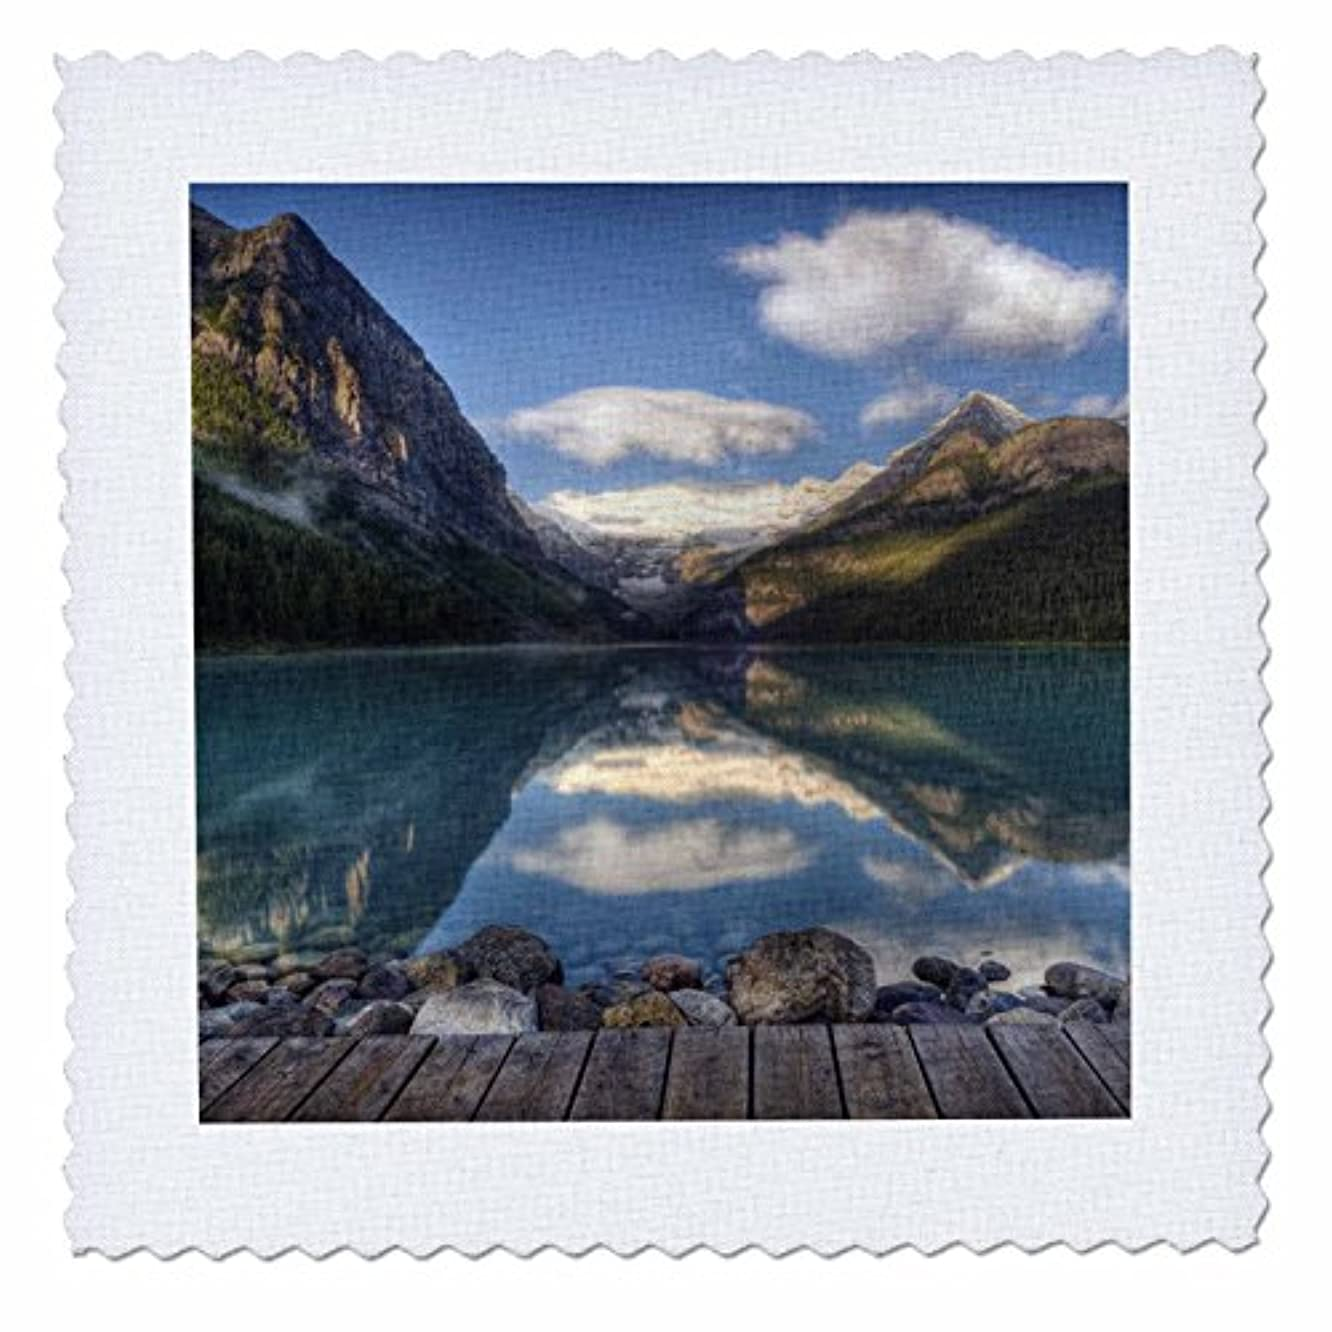 3dRose qs_73734_4 Lake Louise at Sunrise, Banff National Park, Canada-CN02 RKL0001-Raymond Klass-Quilt Square, 12 by 12-Inch